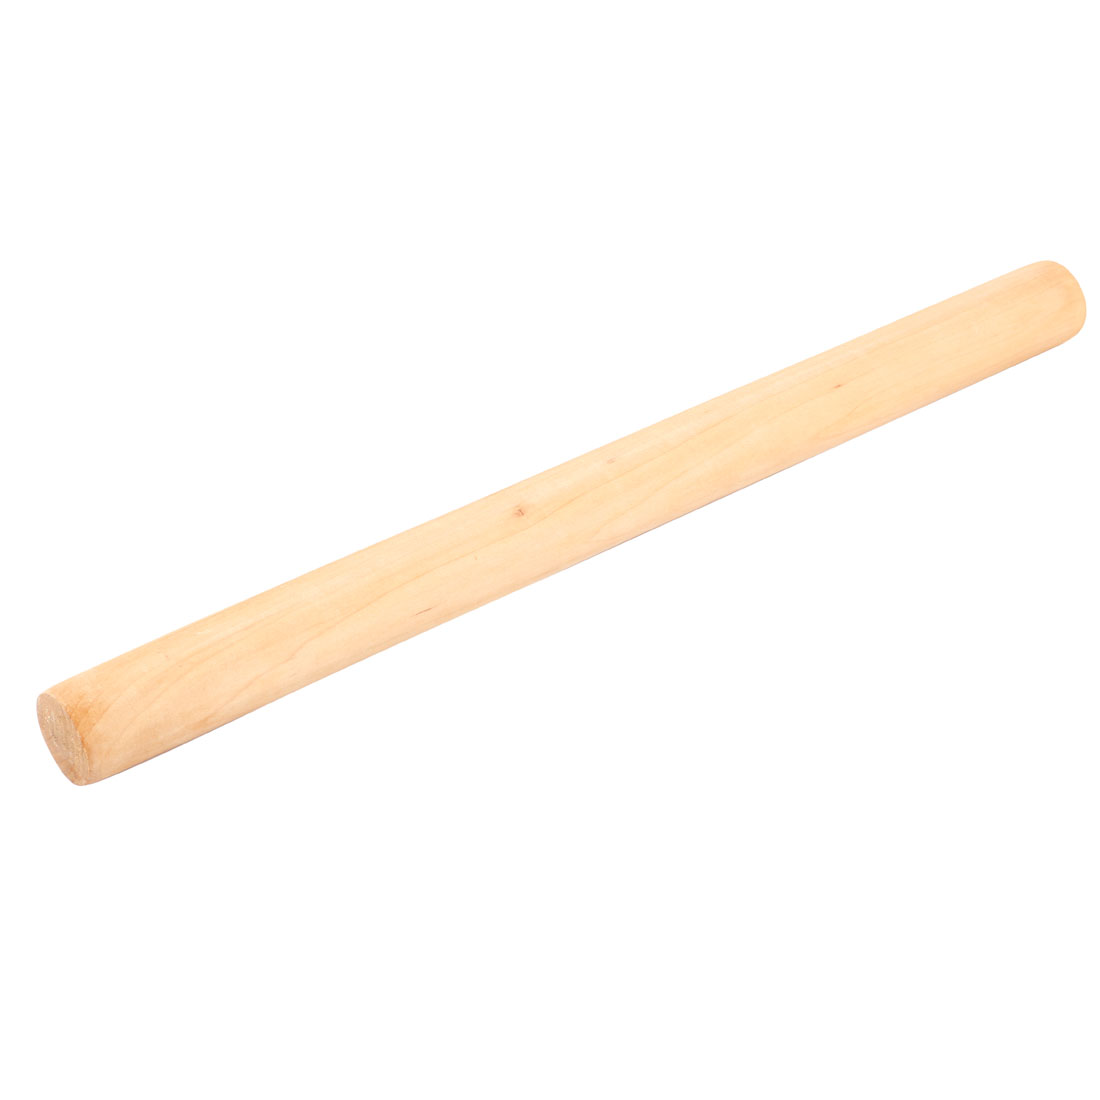 Household Kitchen Wood Non-stick Noodles Dough Roller Rolling Pin